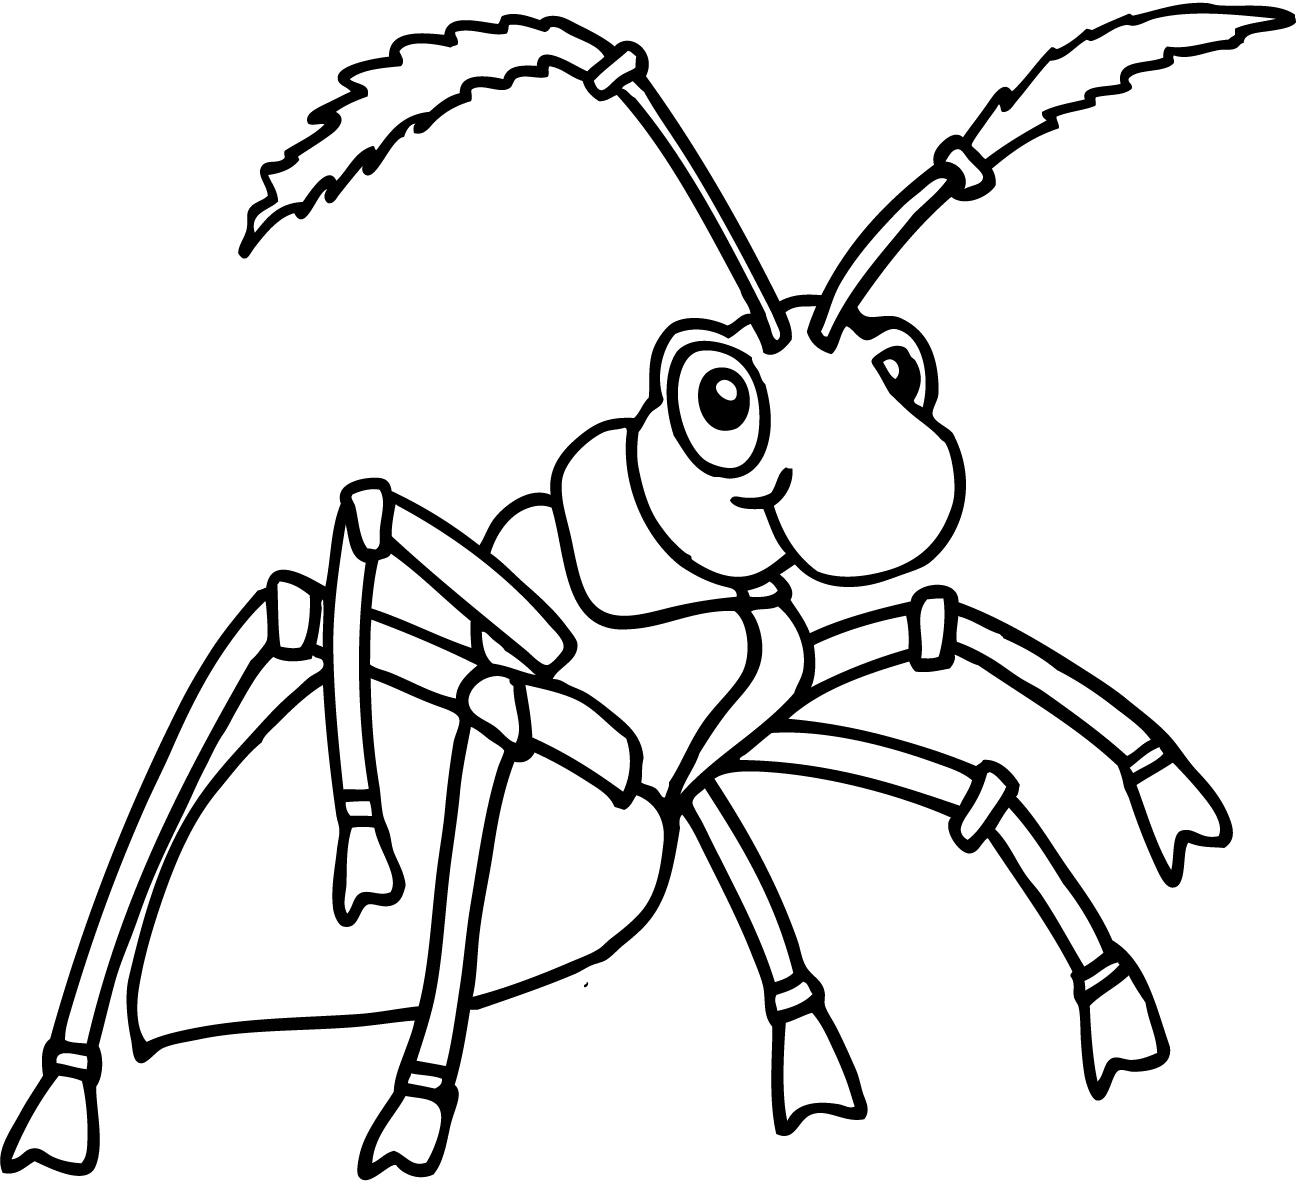 ants go marching coloring pages - photo#27